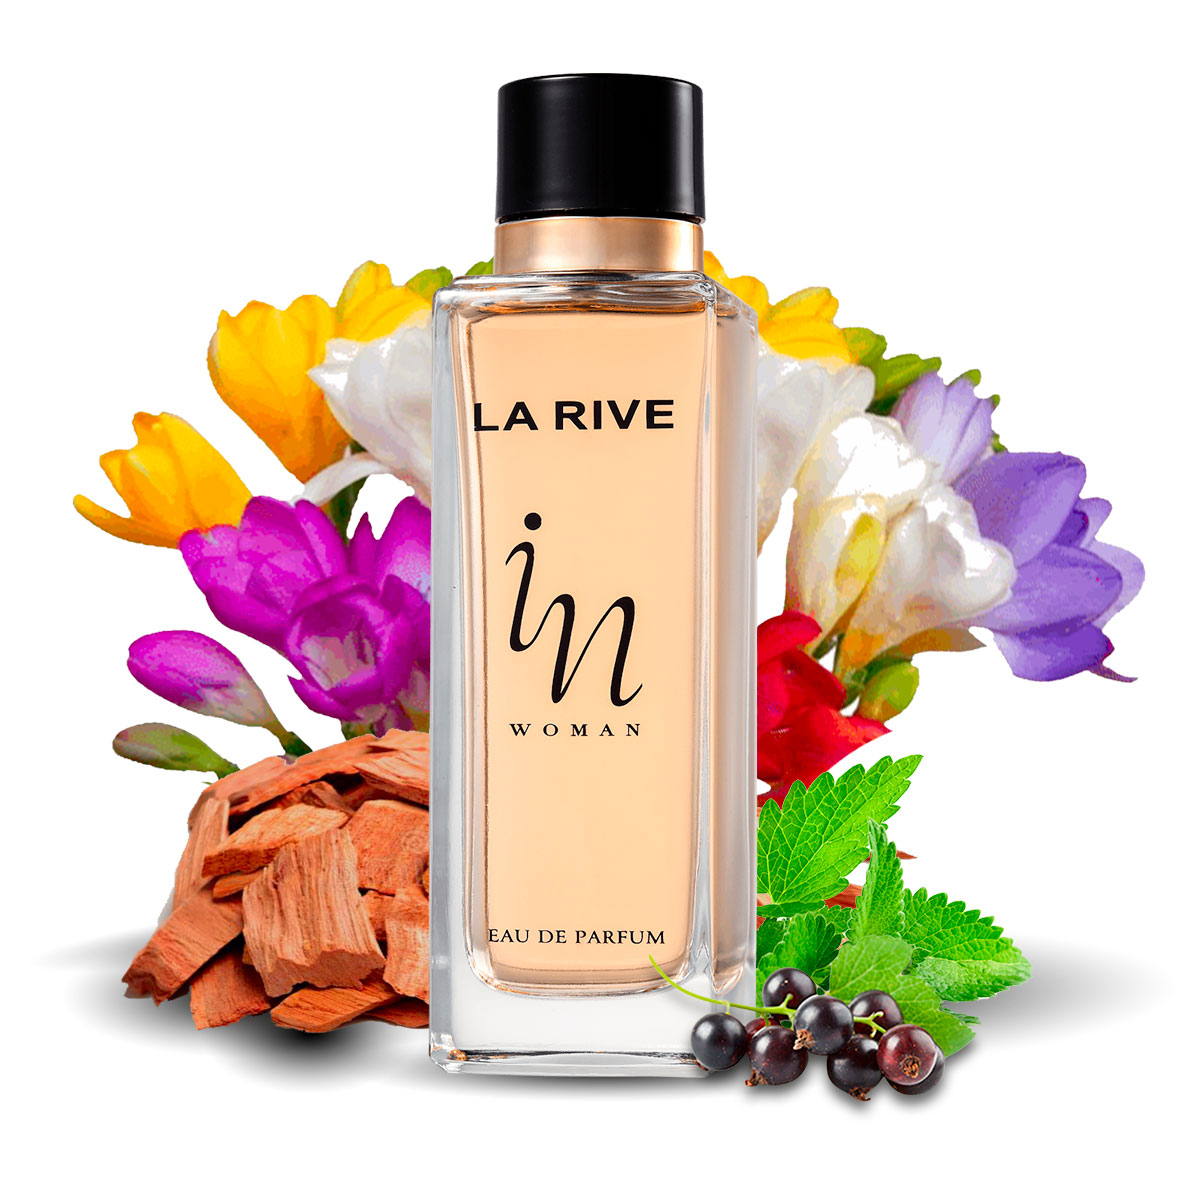 Kit 2 Perfumes Importados My Only Wish e In Woman La Rive